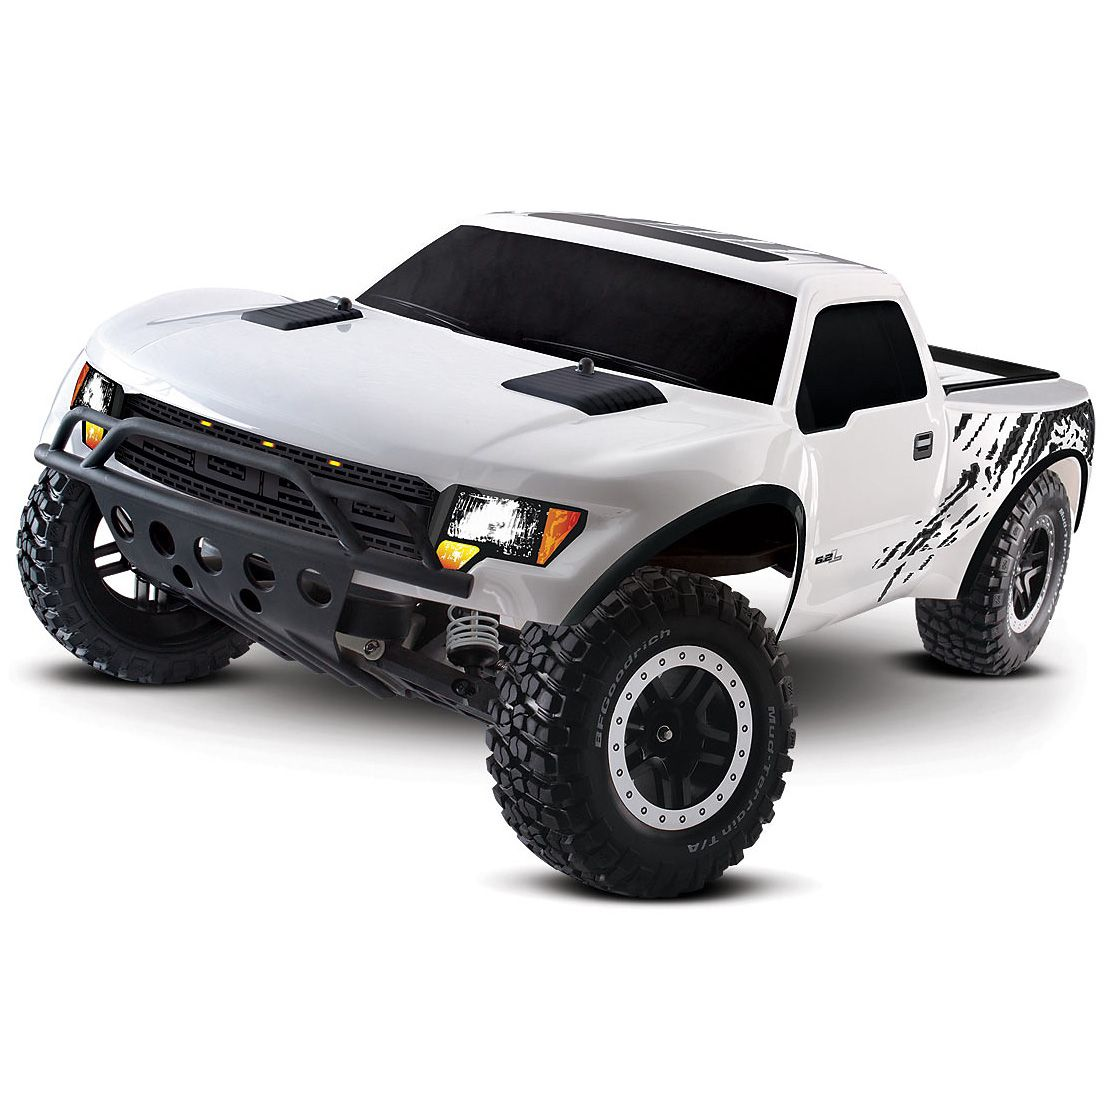 Ford Raptor Remote Control Car White Purpose Built By The Specialty Vehicle Team F 150 Svt Is An Off Road House That Goes From